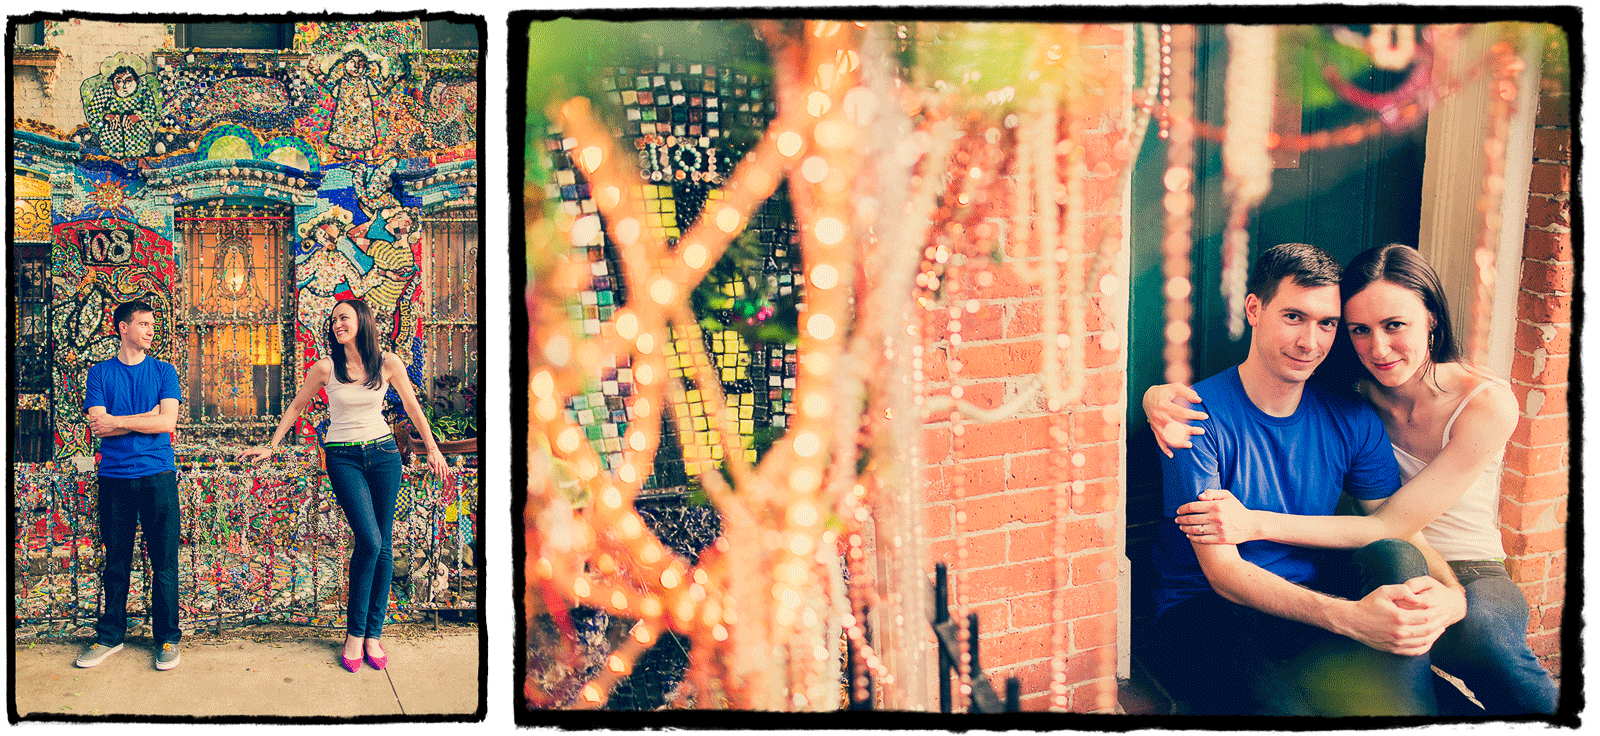 Engagement Portrait: Pat & Shannon show off the artistic decor in their neighborhood in Brooklyn.